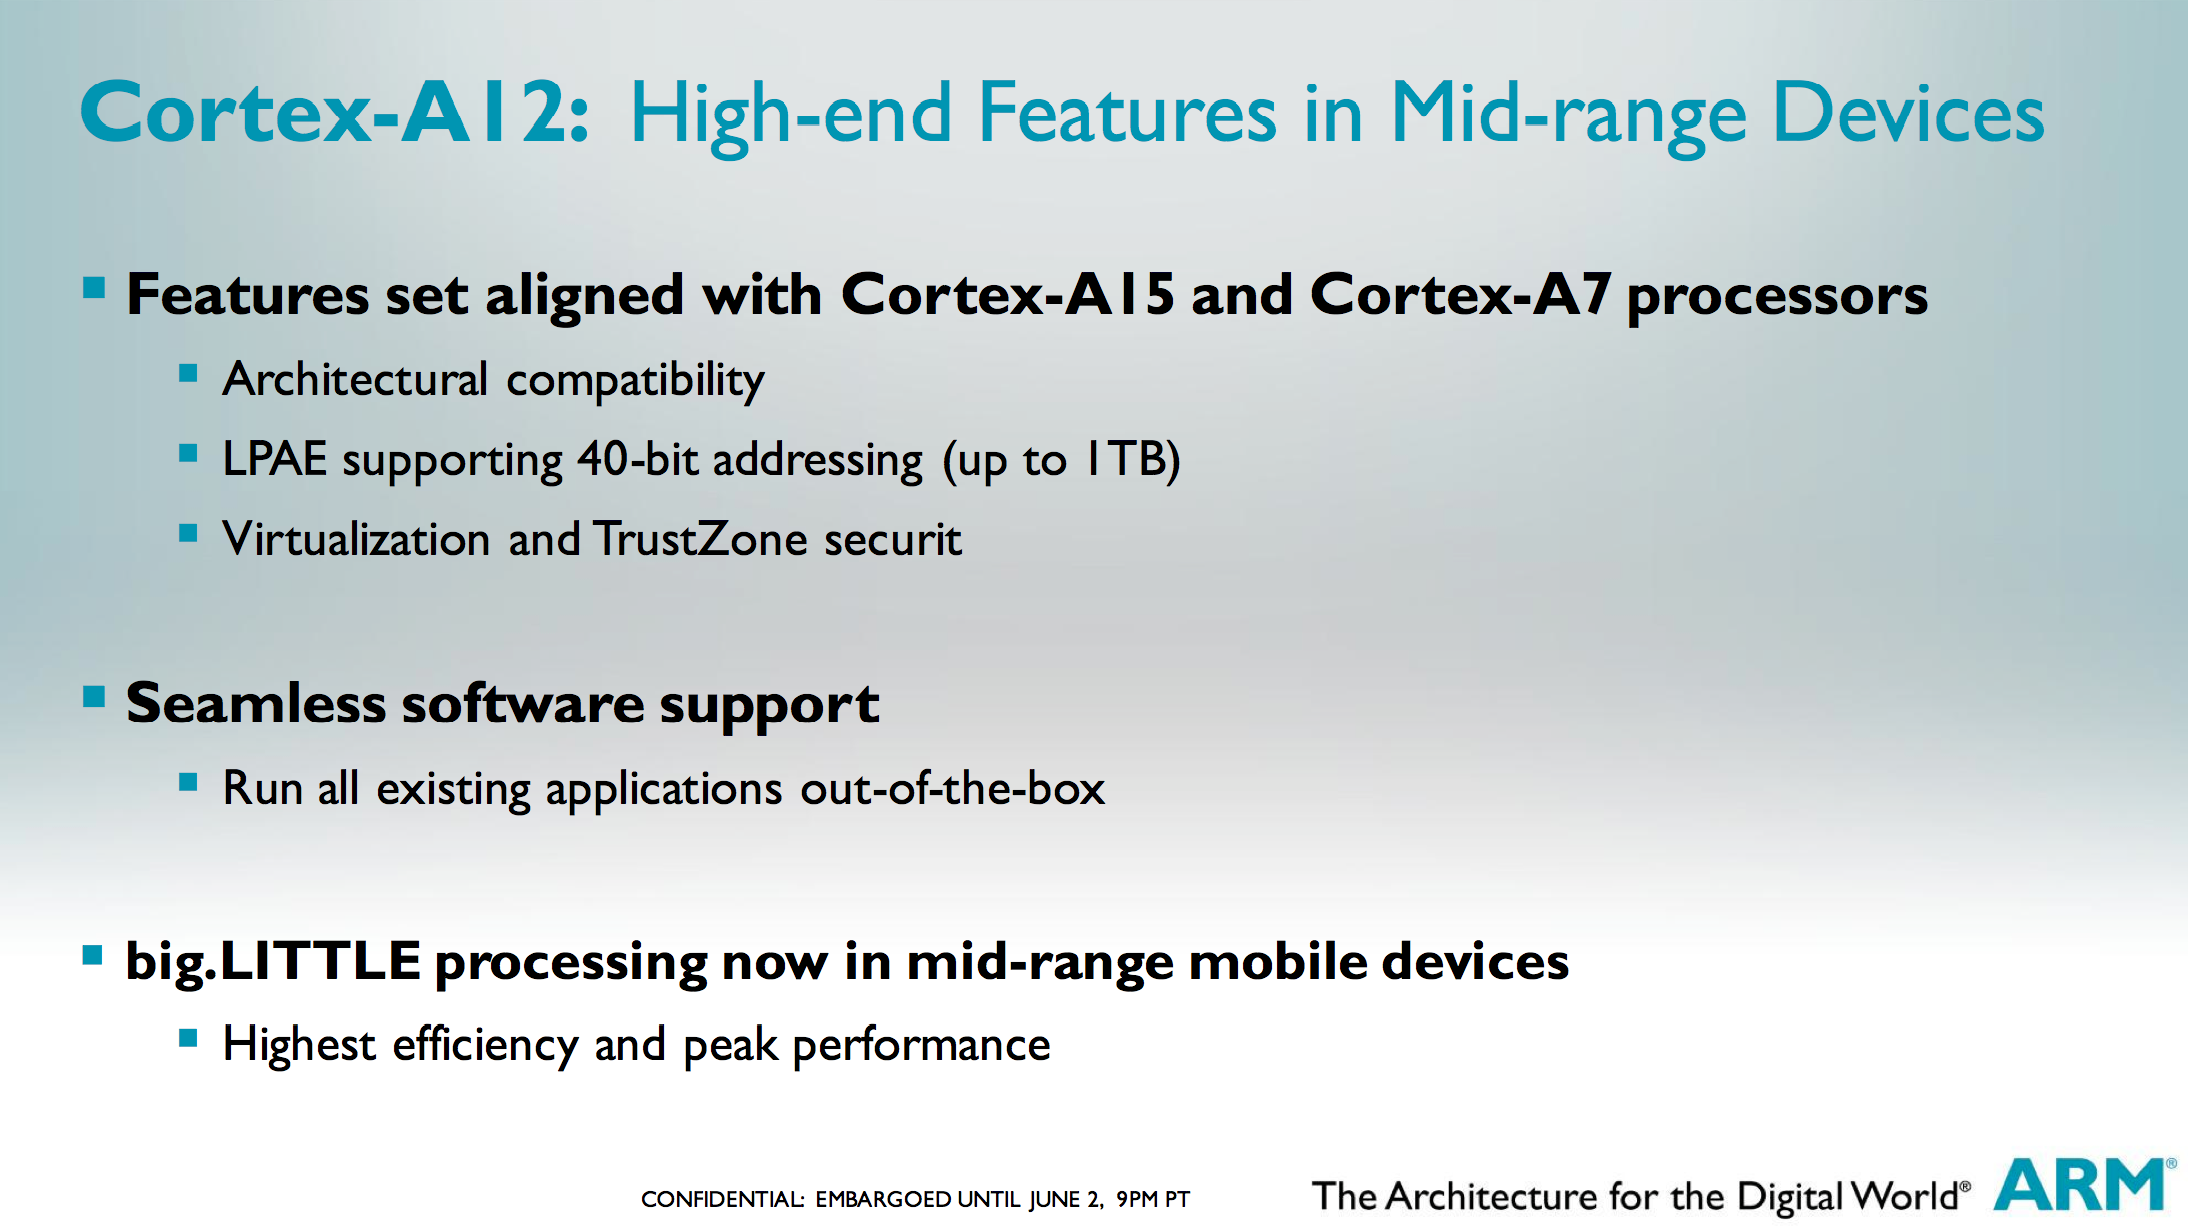 ARM Cortex A12: Between Cortex A9 and A15 in Power & Perf